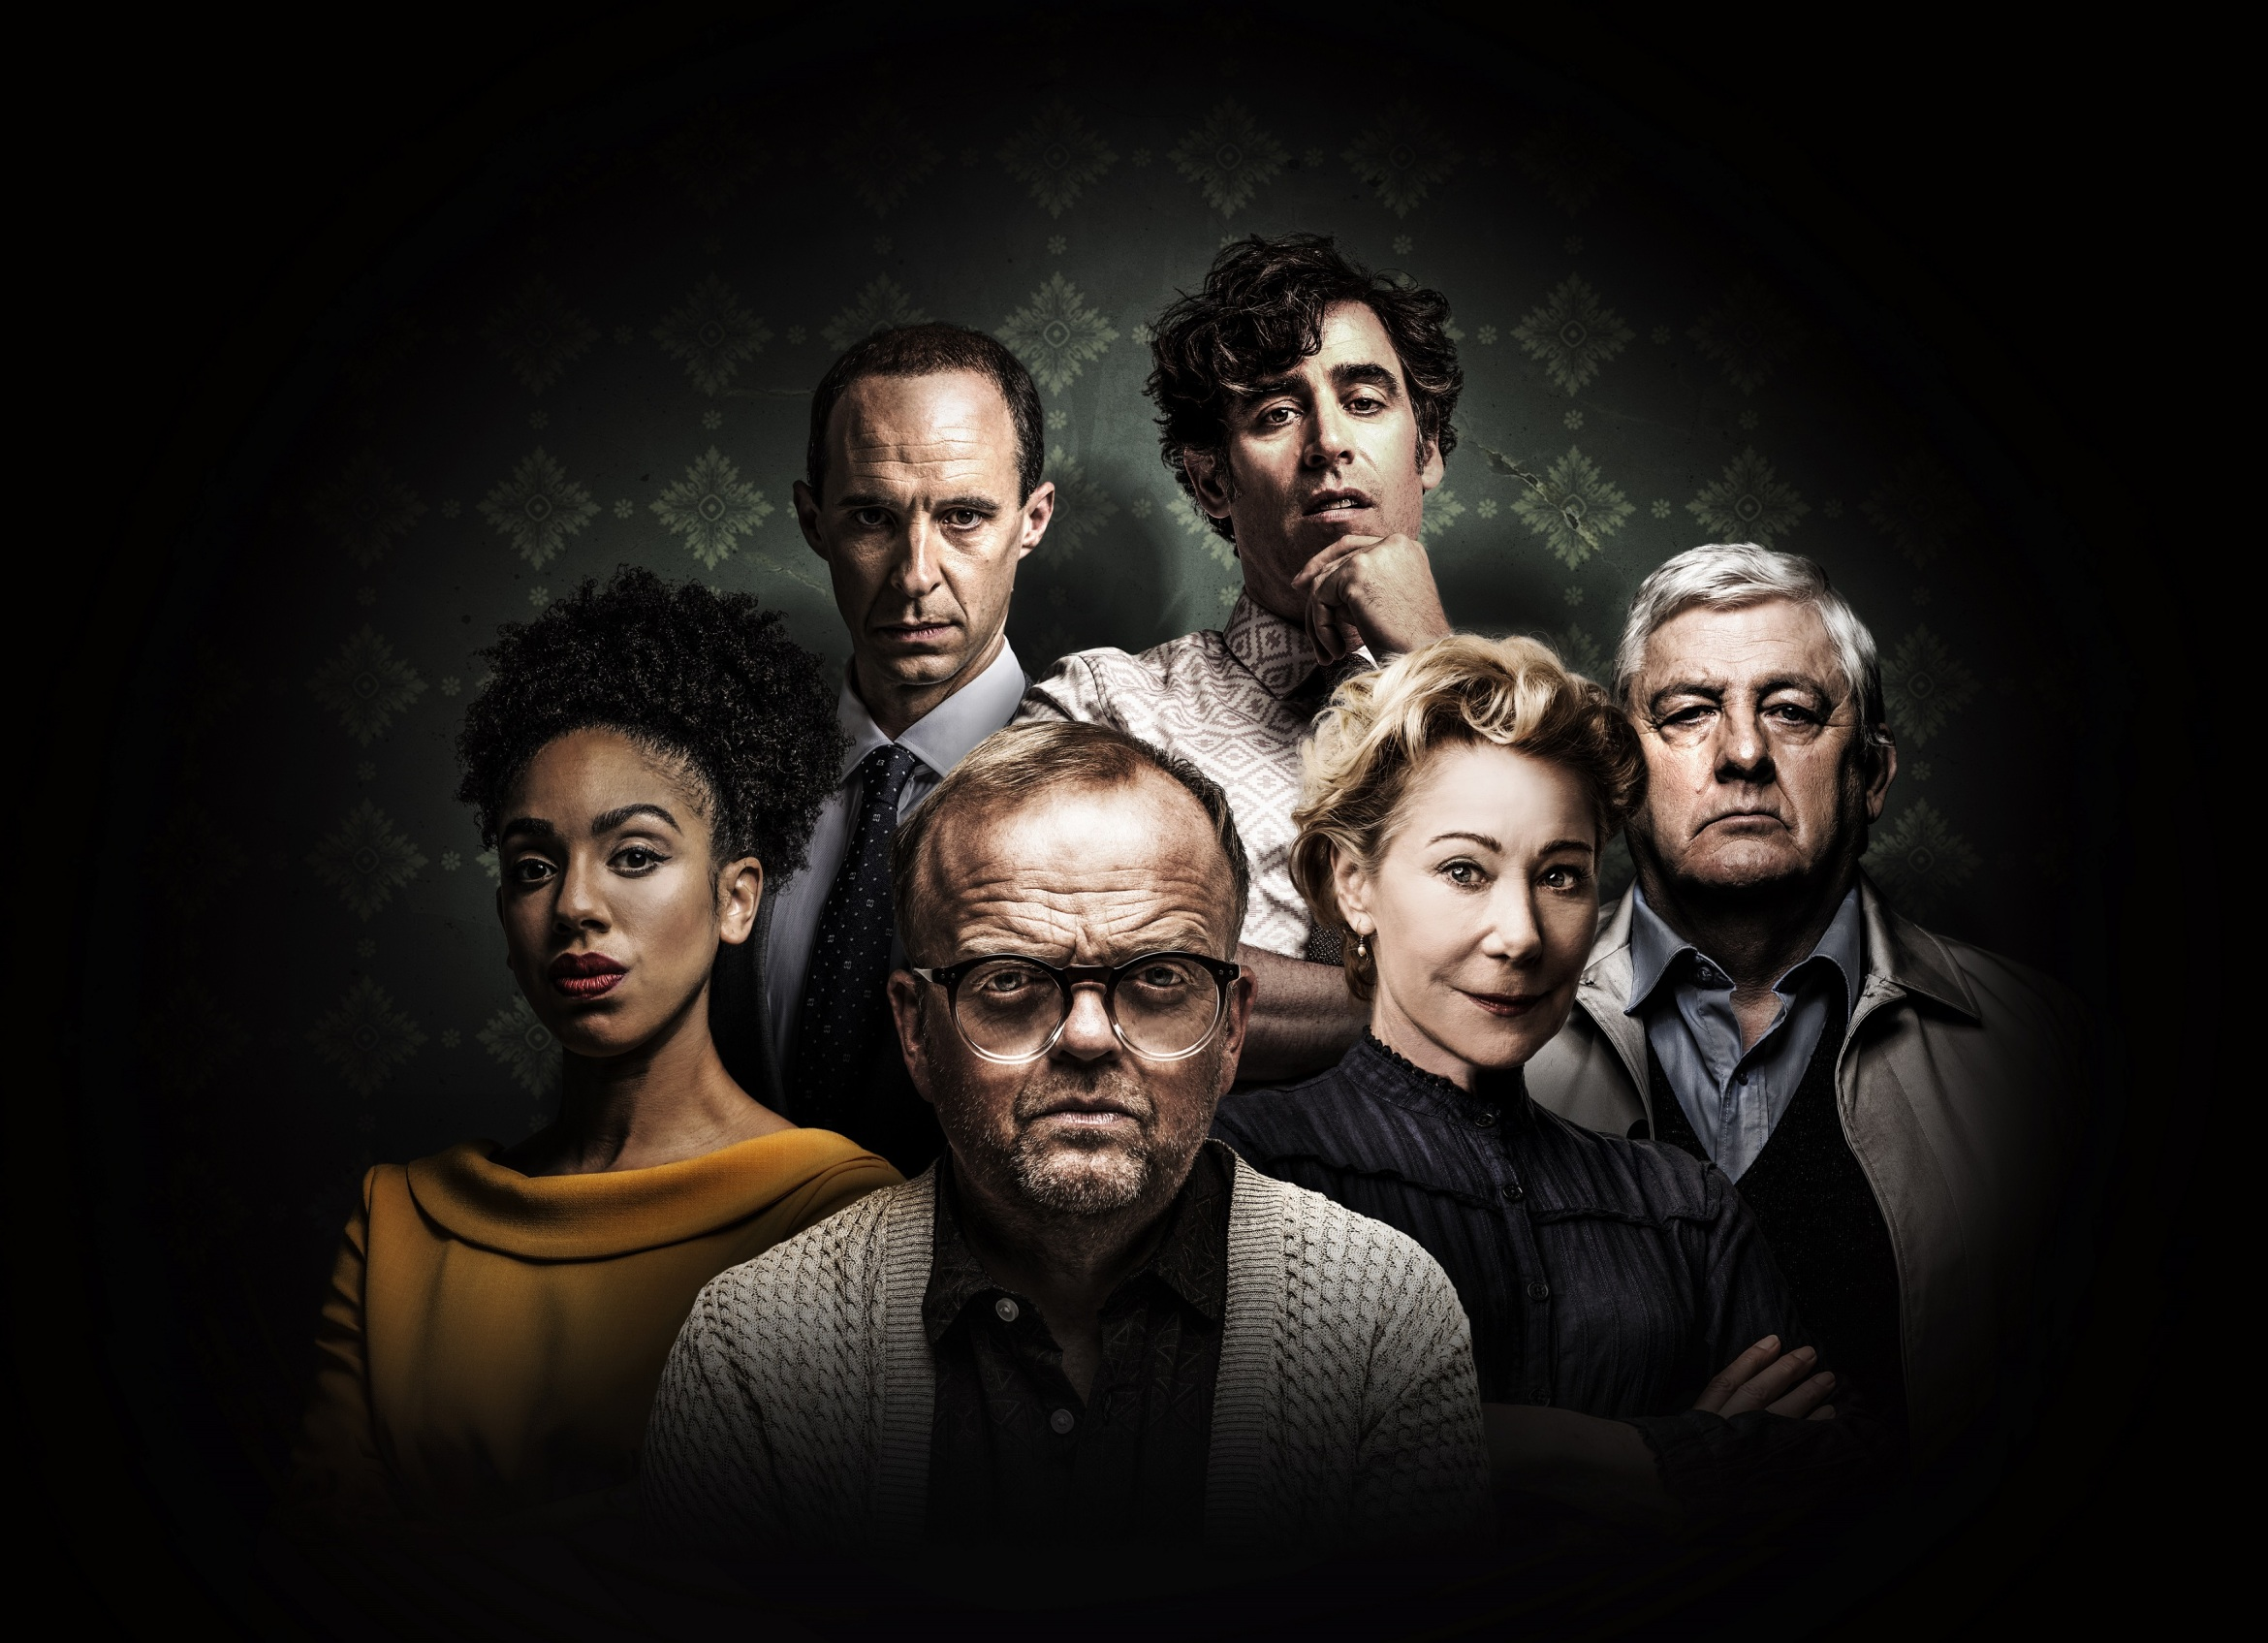 Harold-Pinters-The-Birthday-Party-will-play-at-the-Harold-Pinter-Theatre-from-9th-January-to-14th-April.jpg